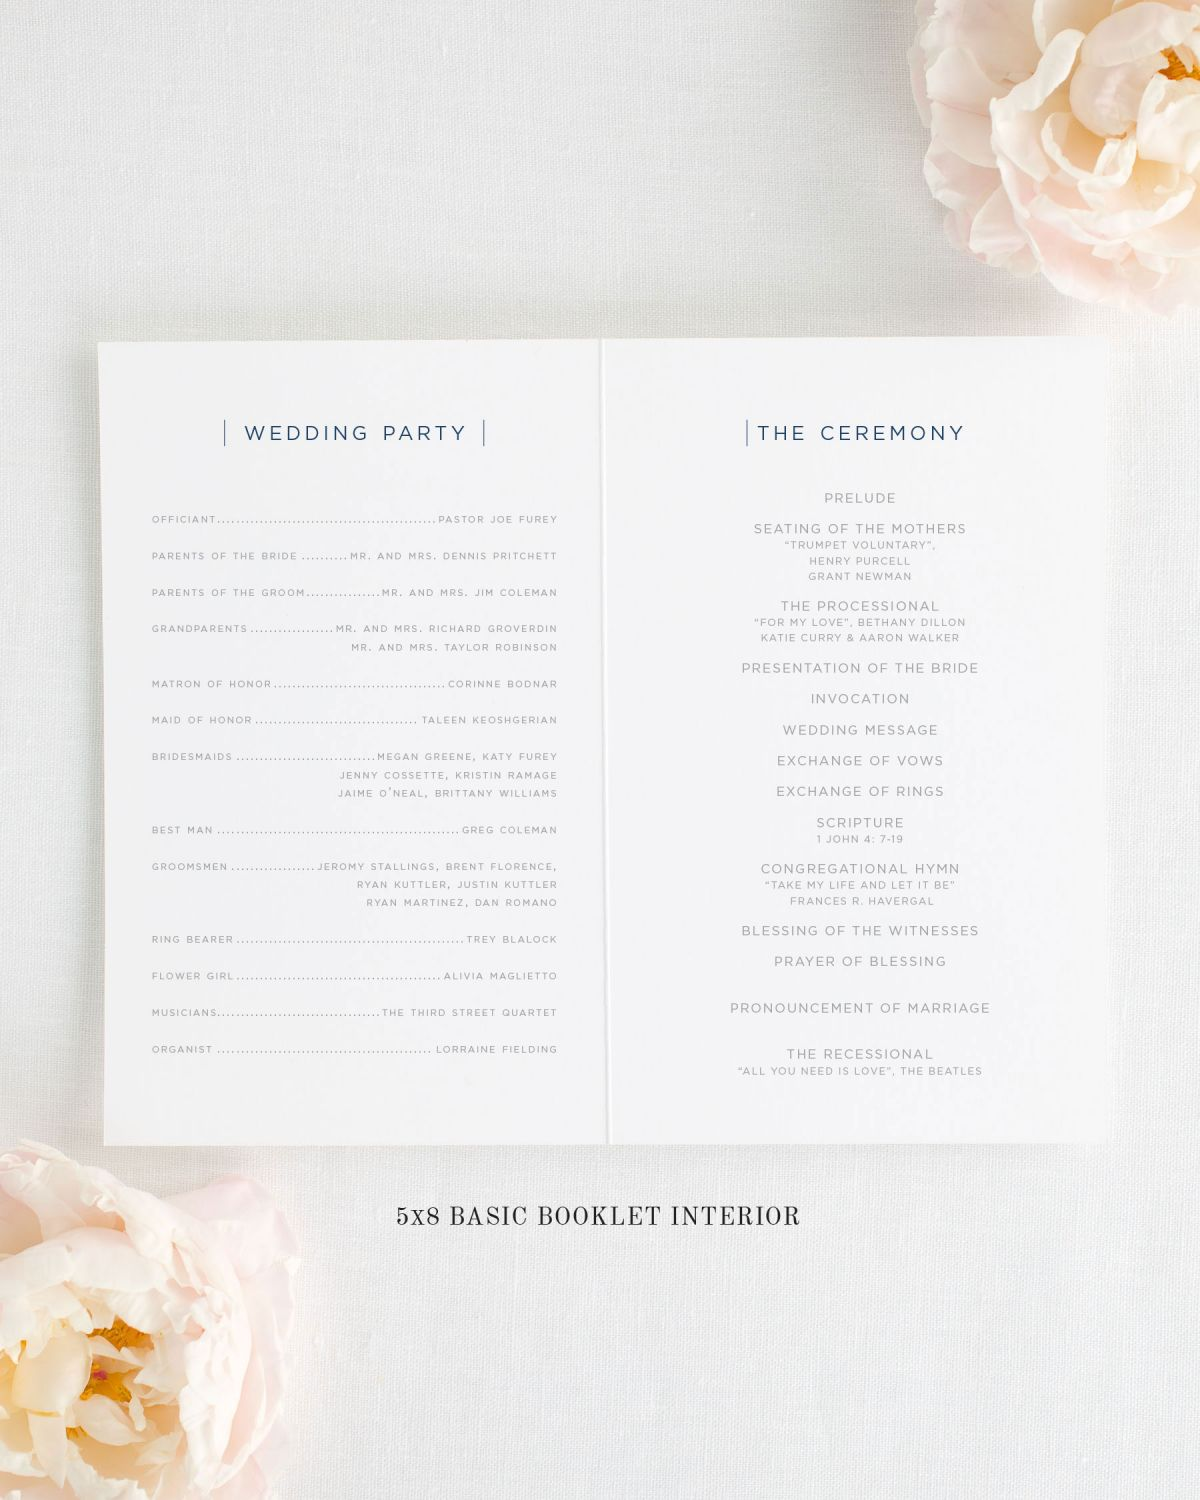 5x8 Wedding Program Interior